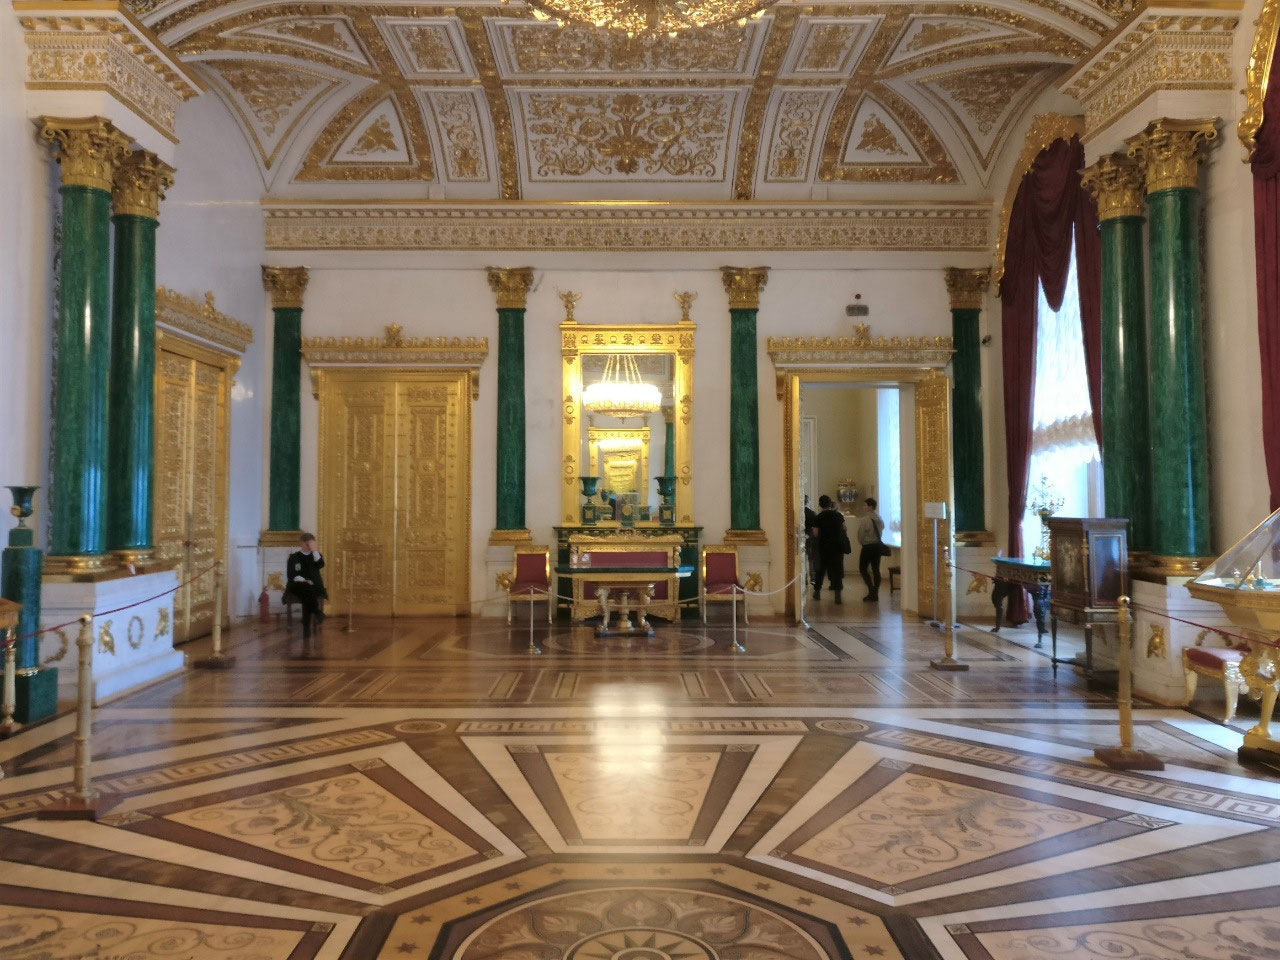 Malachite Room, Hermitage